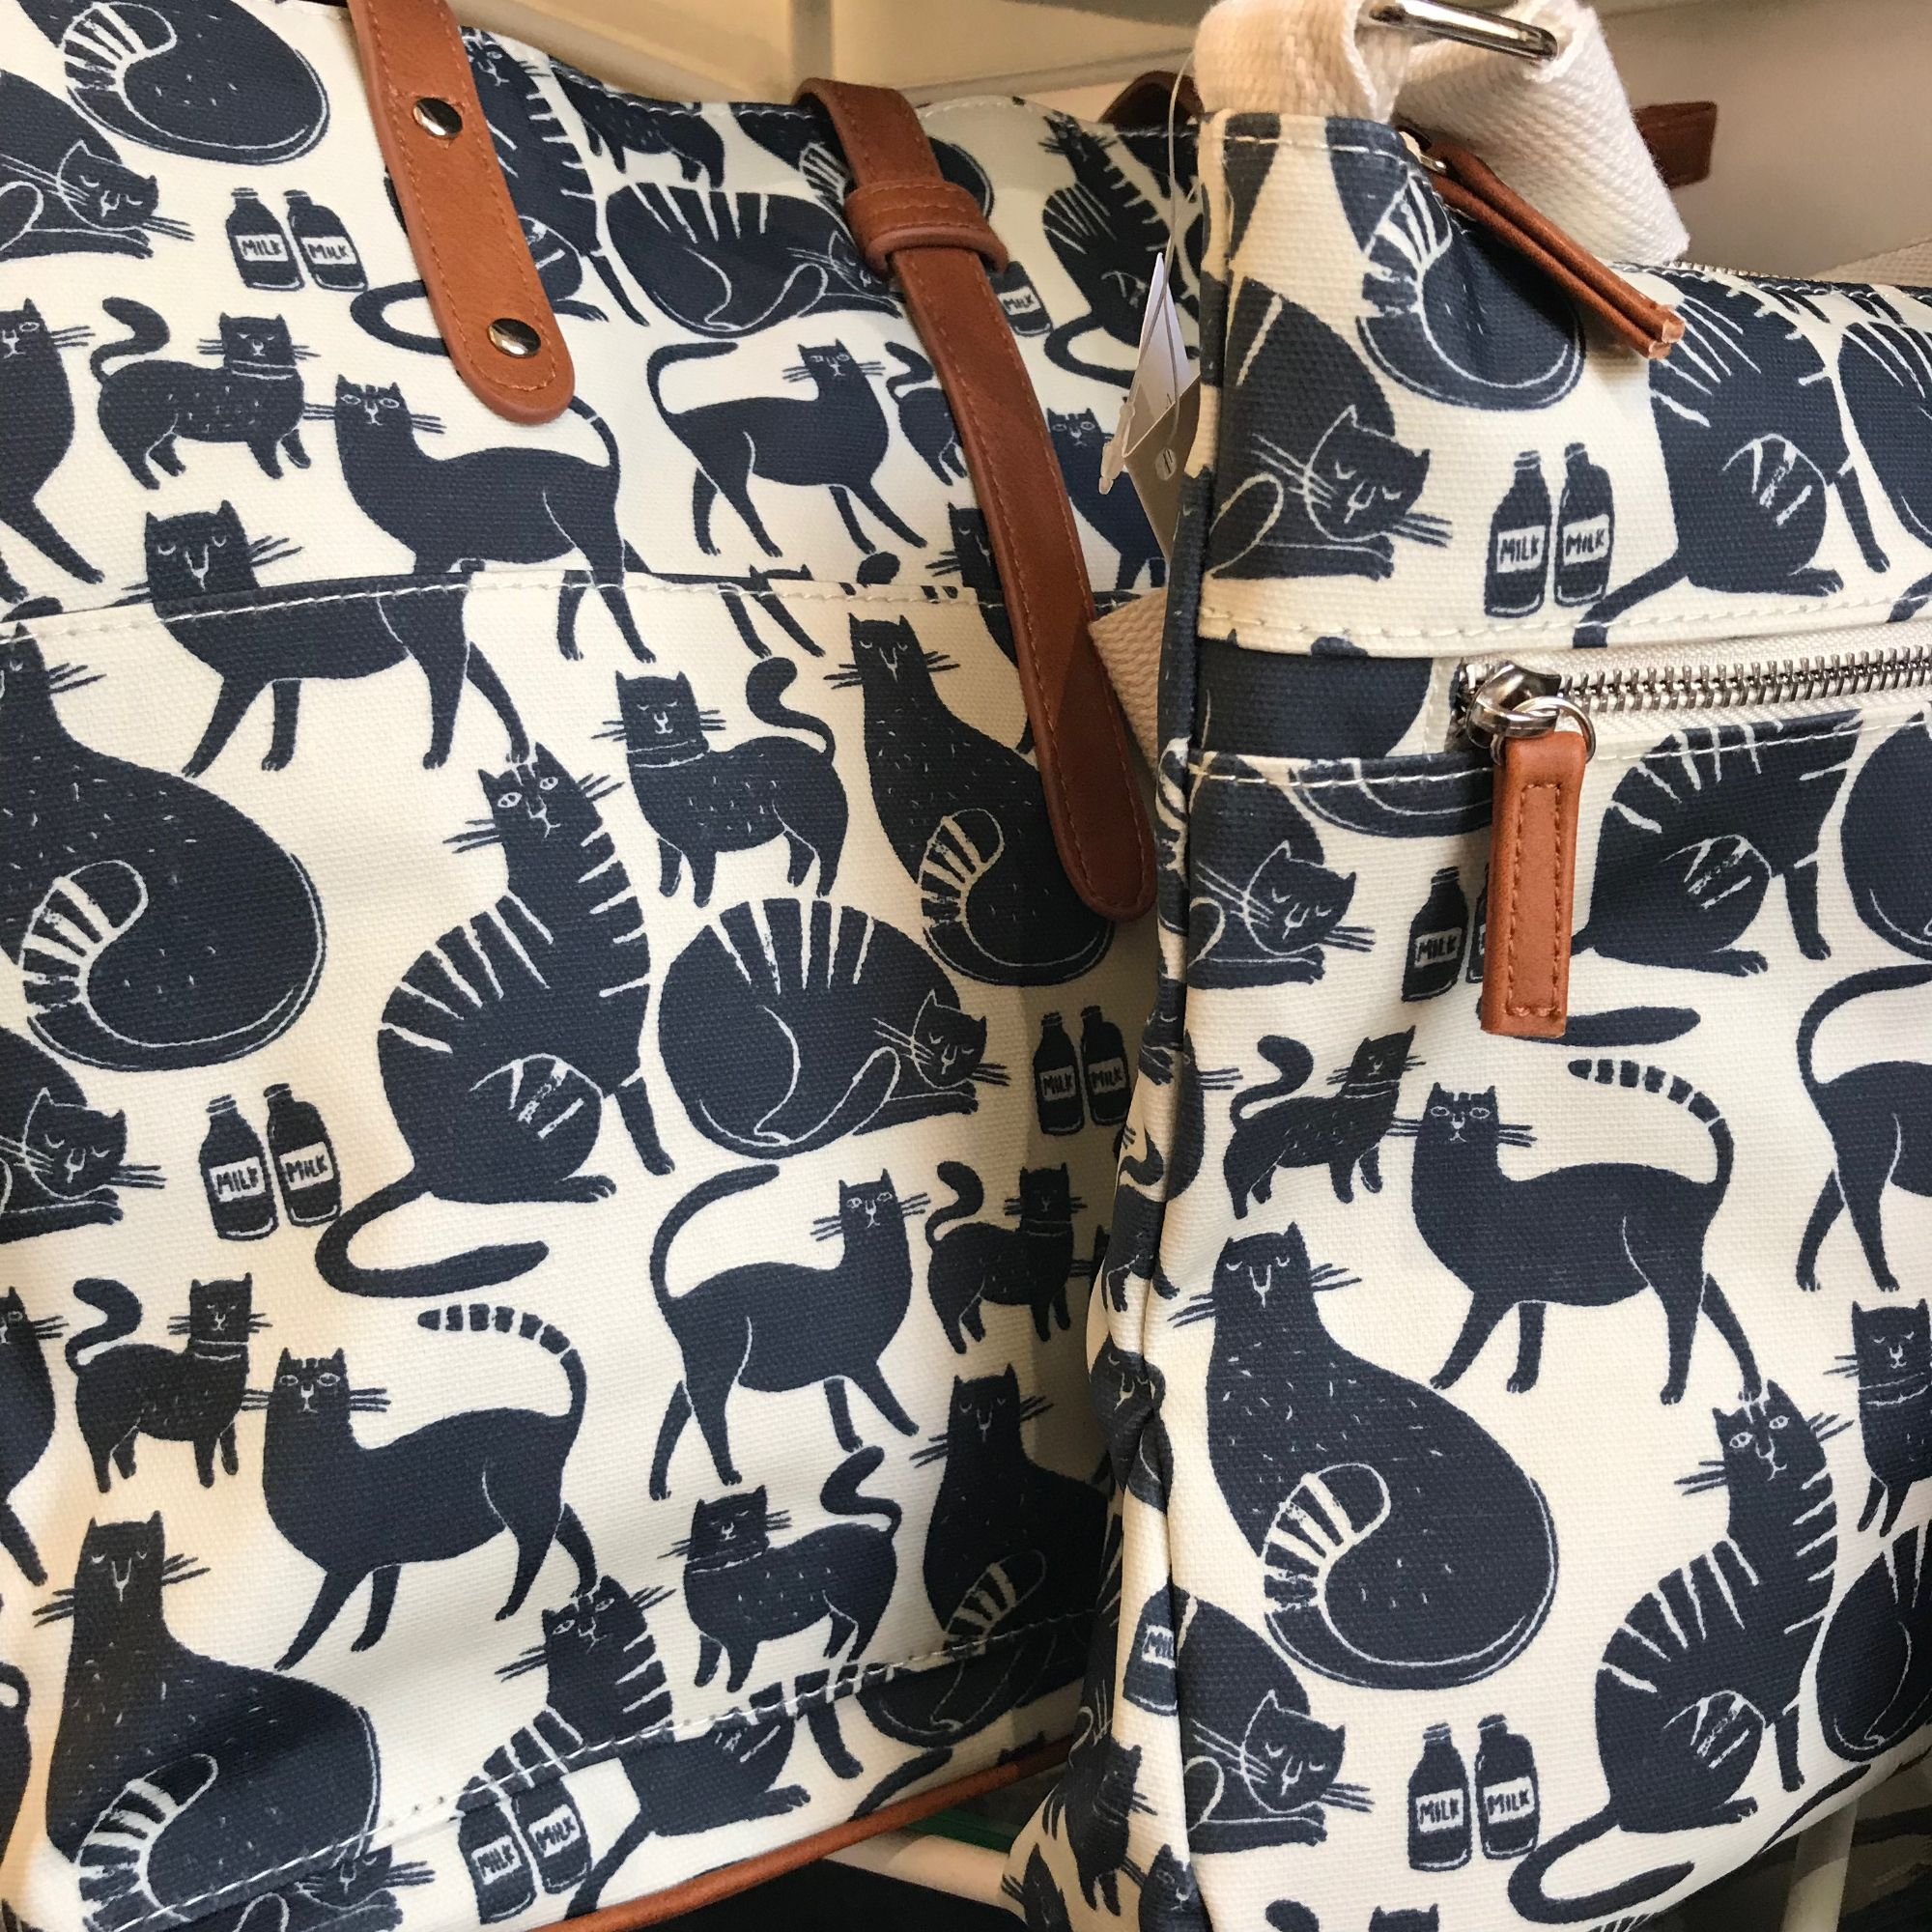 Shruti bags - beautiful, quirky animals , bikes and patterns